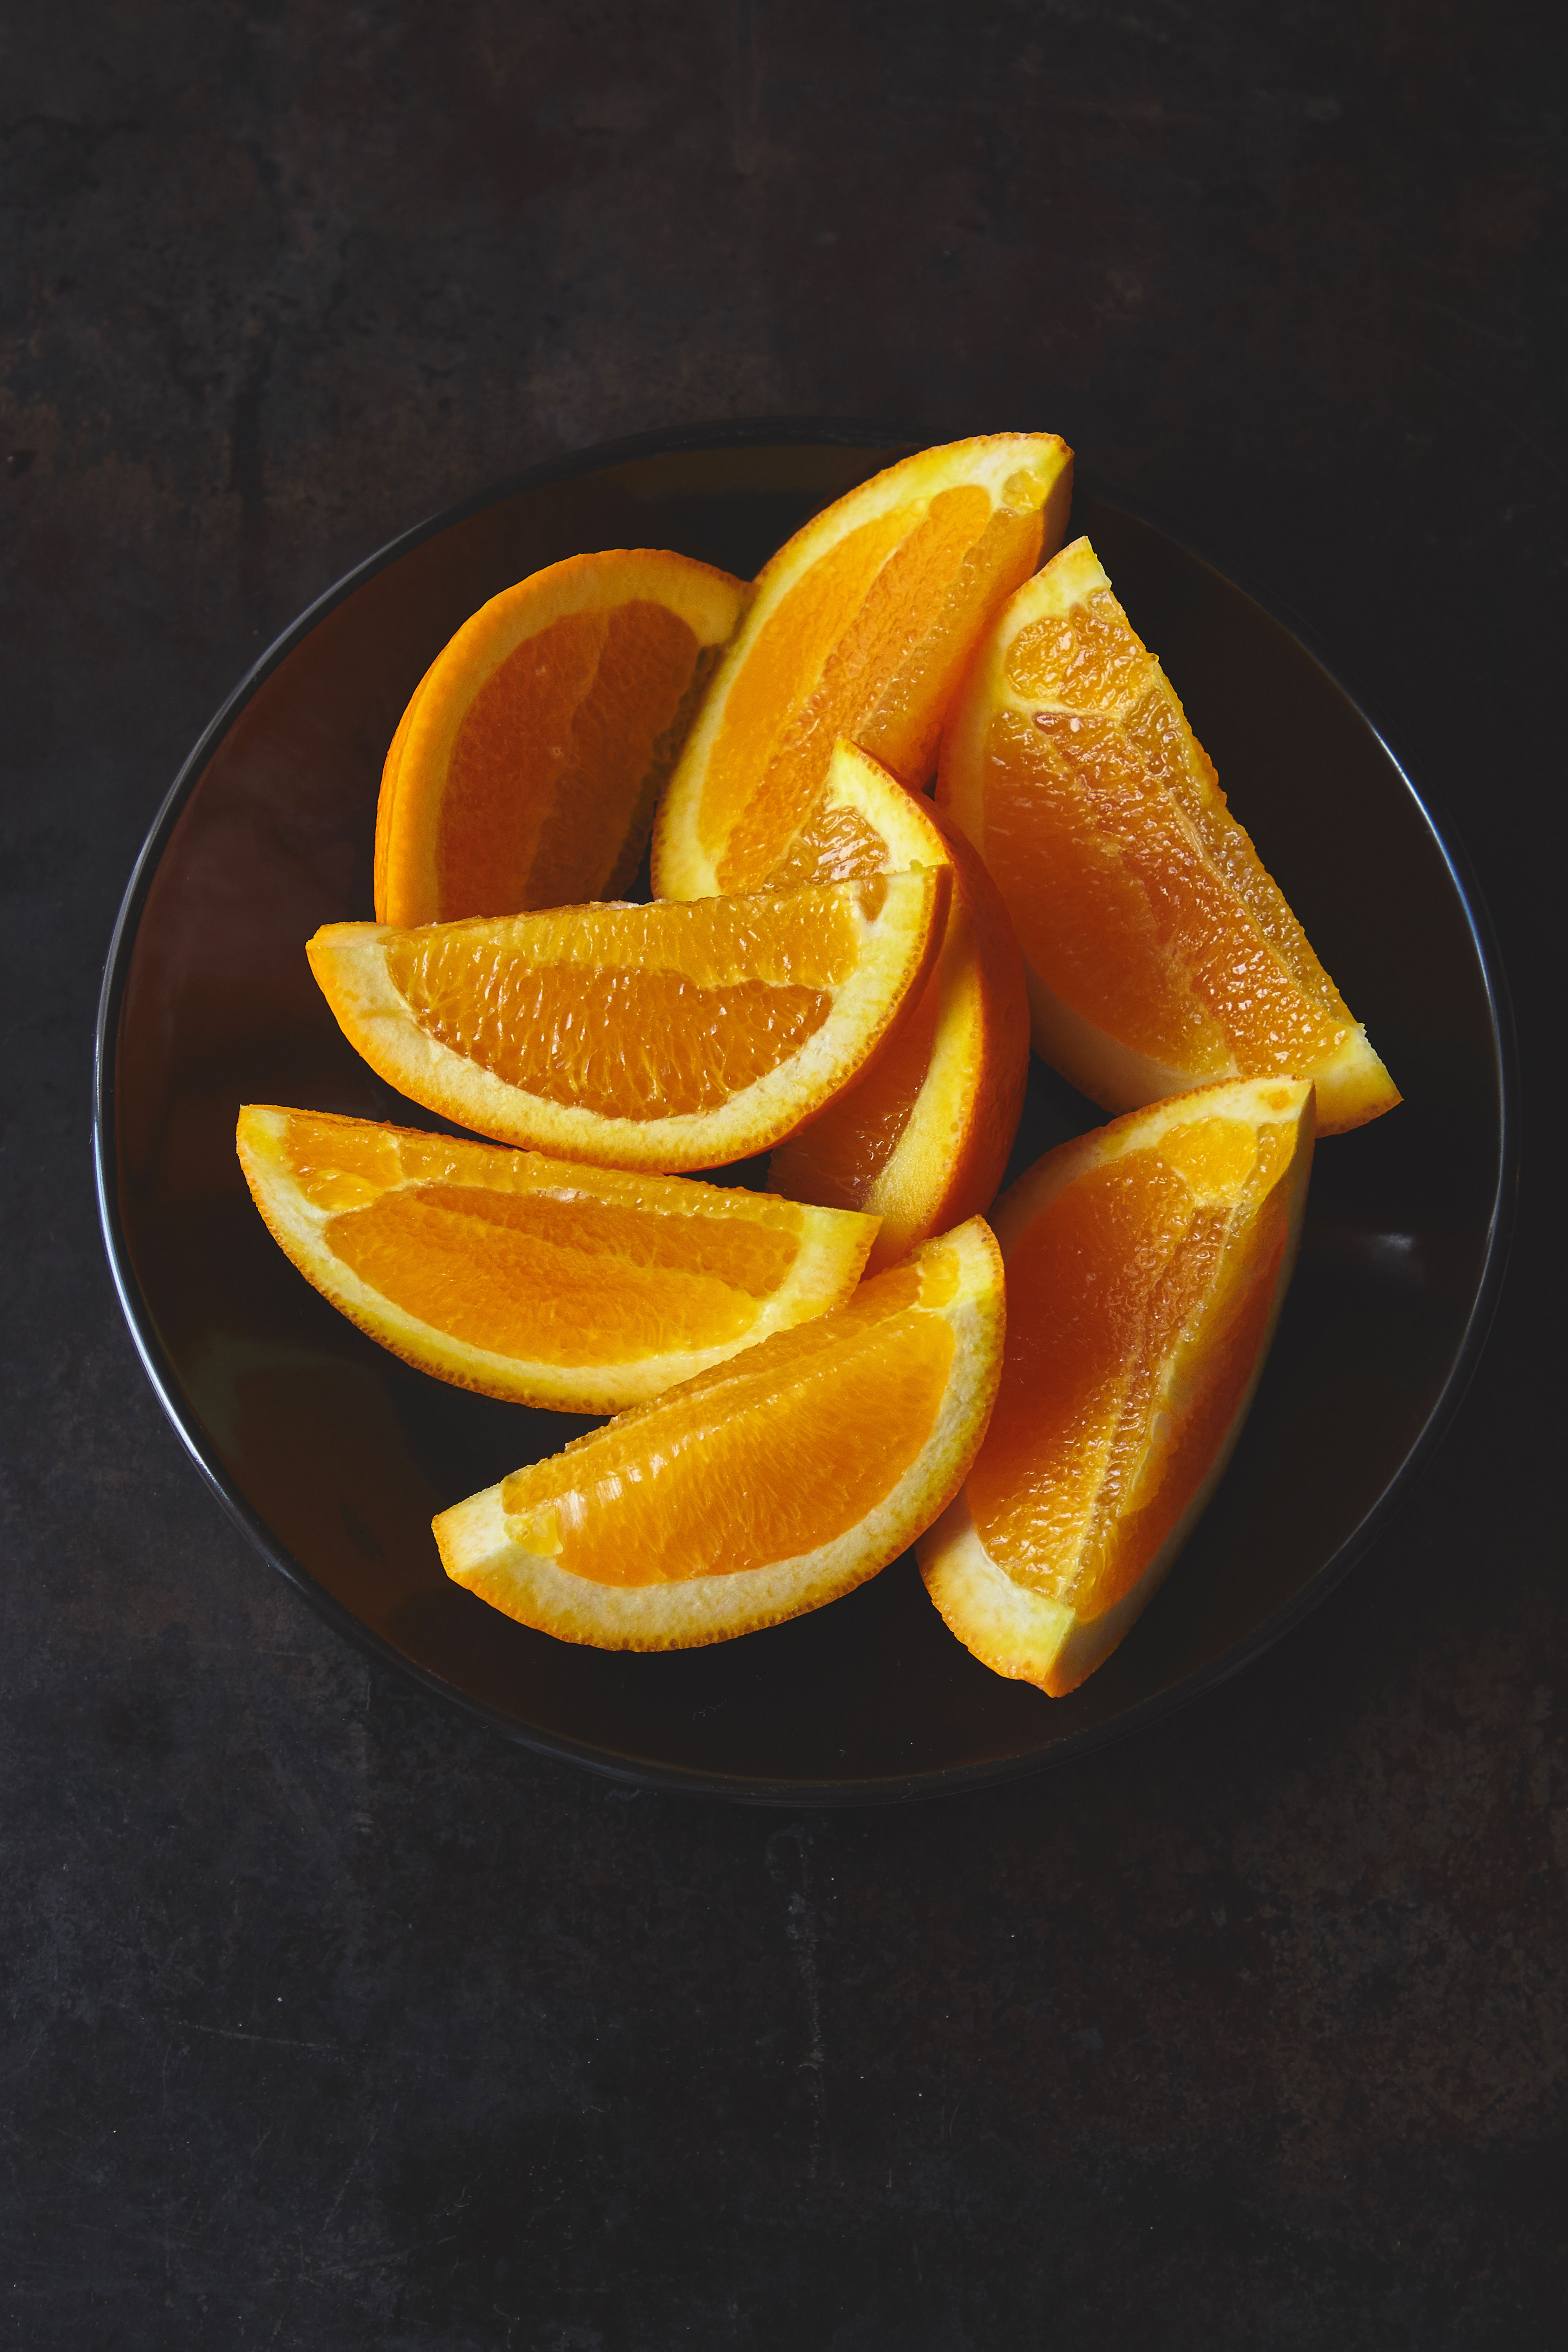 135029 download wallpaper Food, Plate, Fruit, Citrus, Lobules, Slices screensavers and pictures for free